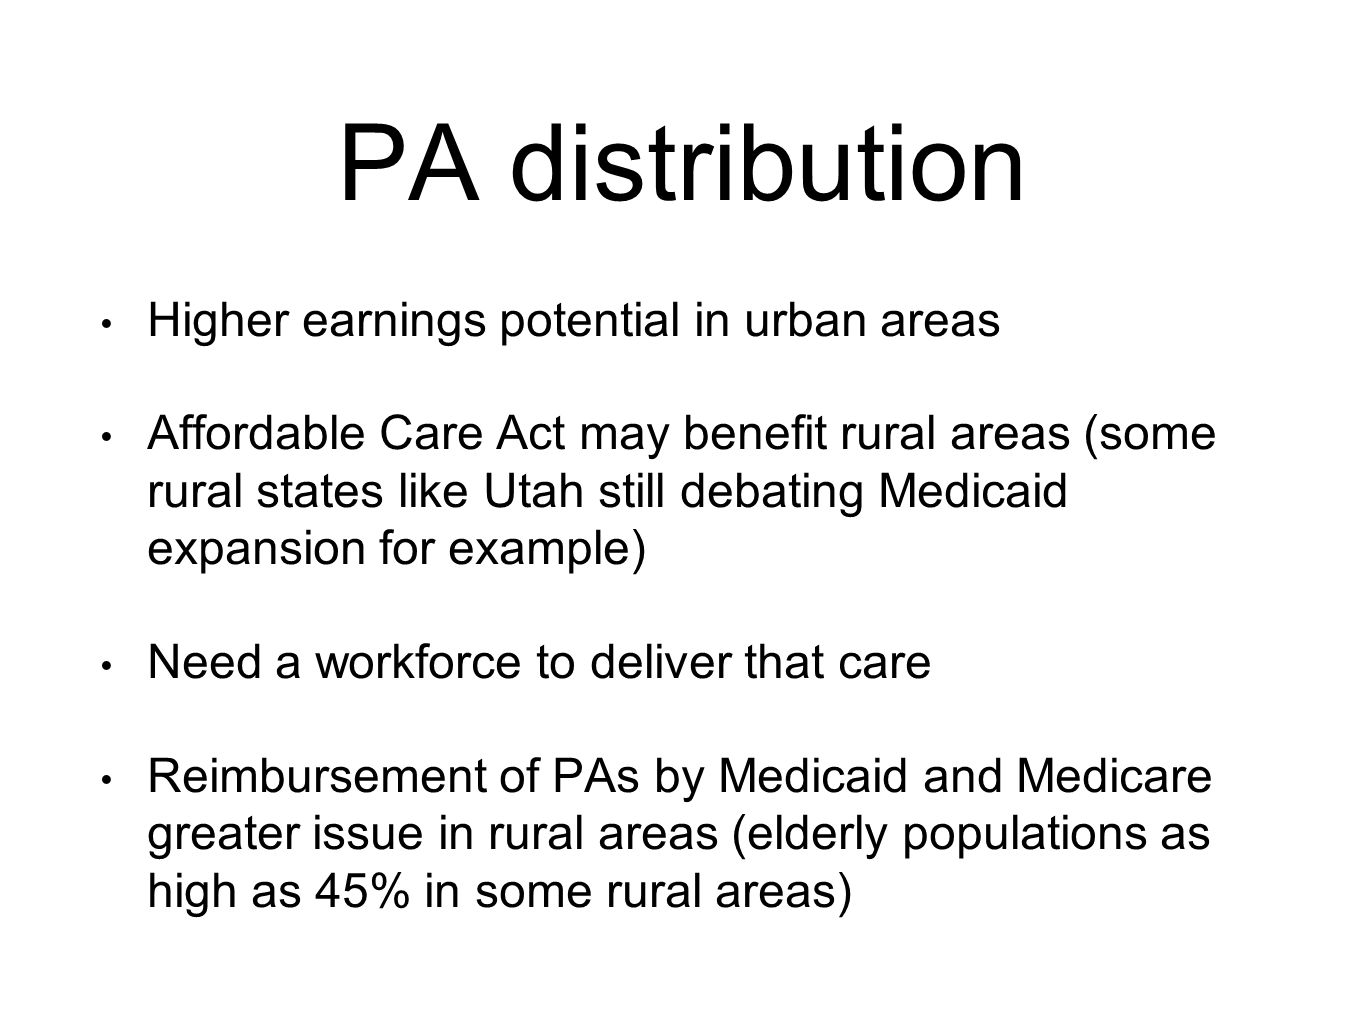 PA distribution Higher earnings potential in urban areas Affordable Care Act may benefit rural areas (some rural states like Utah still debating Medicaid expansion for example) Need a workforce to deliver that care Reimbursement of PAs by Medicaid and Medicare greater issue in rural areas (elderly populations as high as 45% in some rural areas)